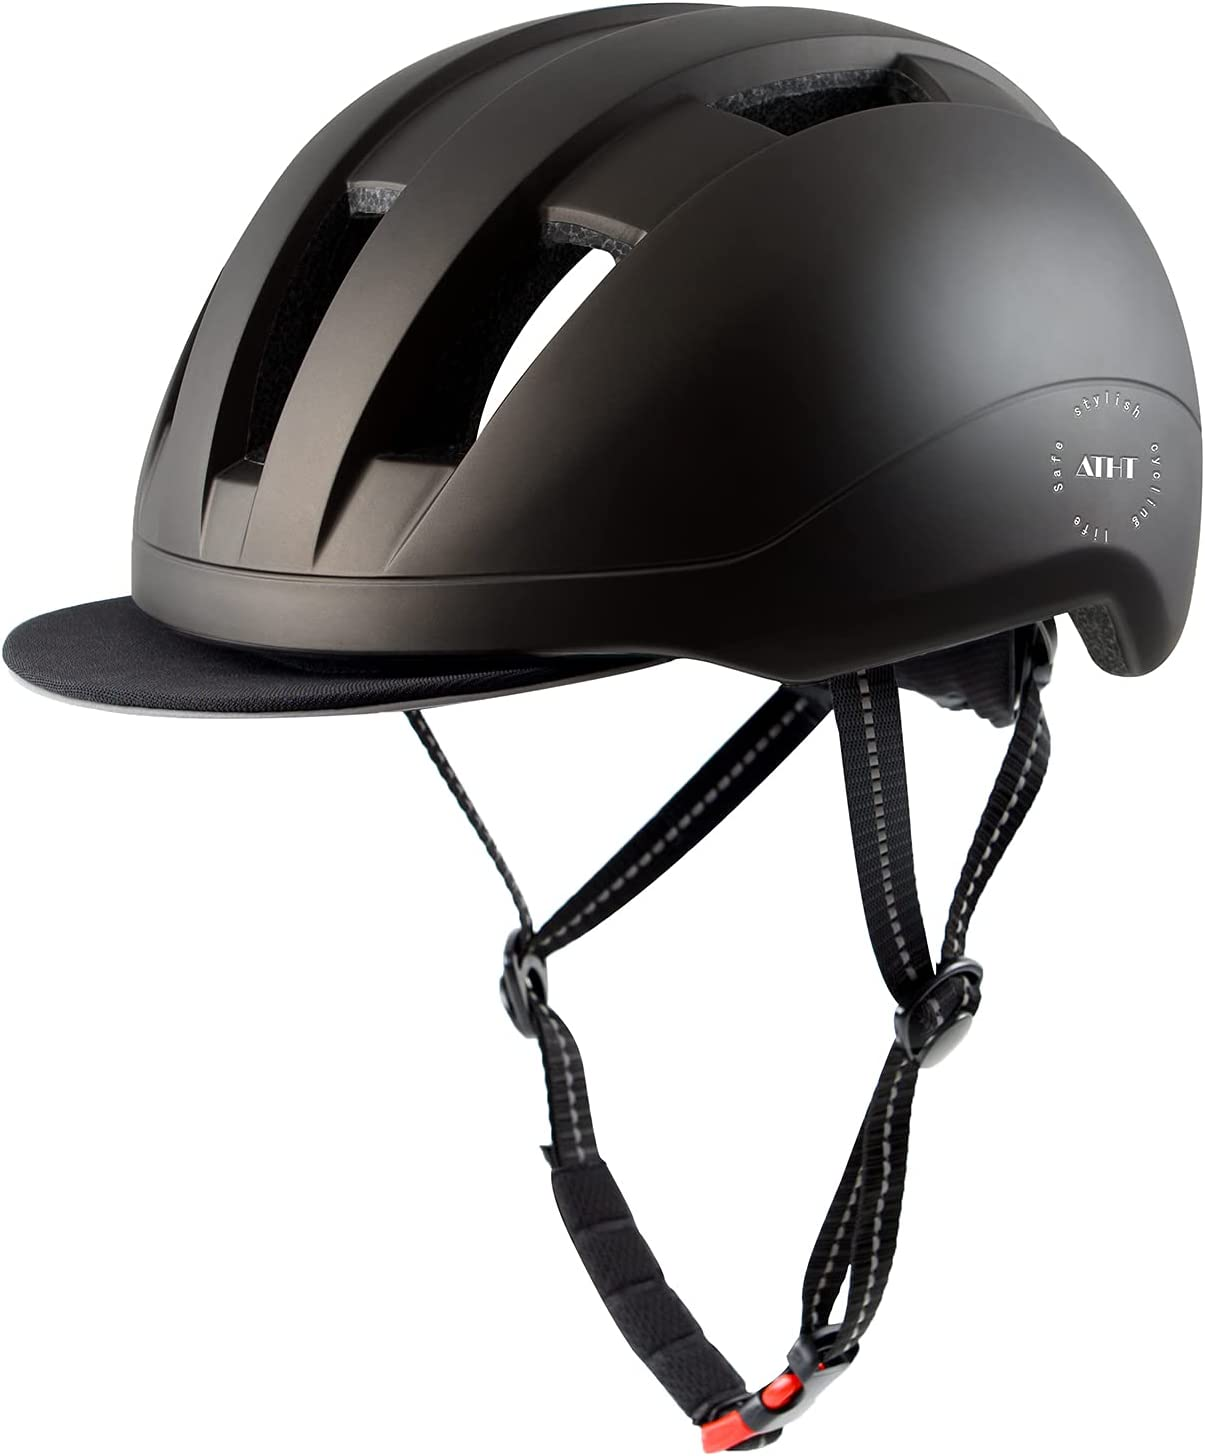 Atphfety OFFicial mail Max 57% OFF order Adult Bike Helmet Commuter Men Wome Bicycle for